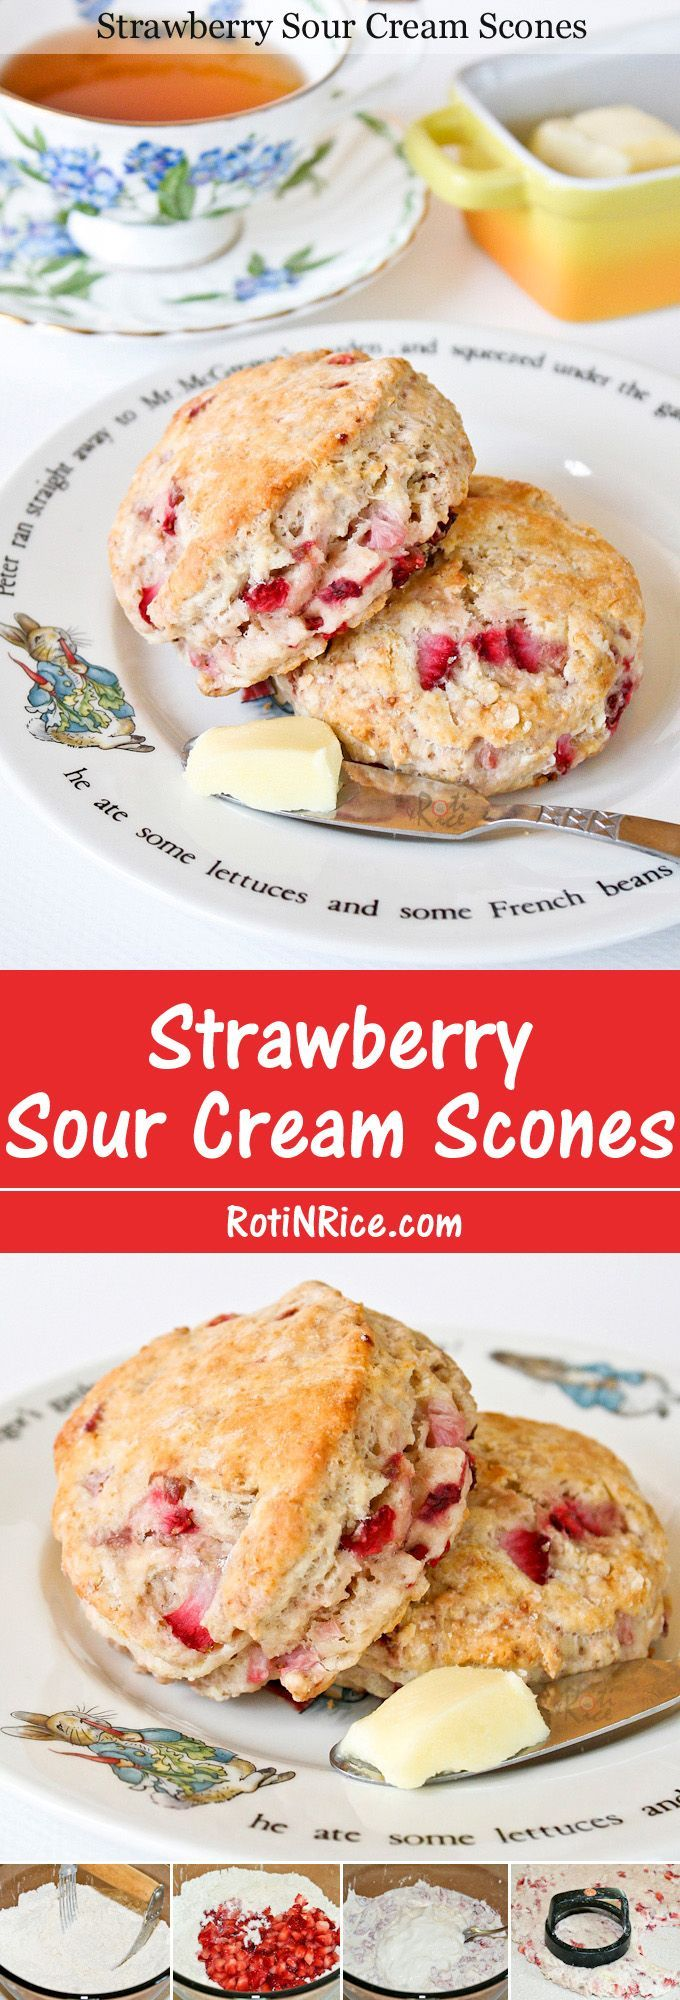 Soft, buttery, eggless Strawberry Sour Cream Scones with an almost cake-like texture. Delicious eaten warm with butter and a cup of tea. | RotiNRice.com (when I use sour cream I cut it into the dry ingredients before adding liquid.)